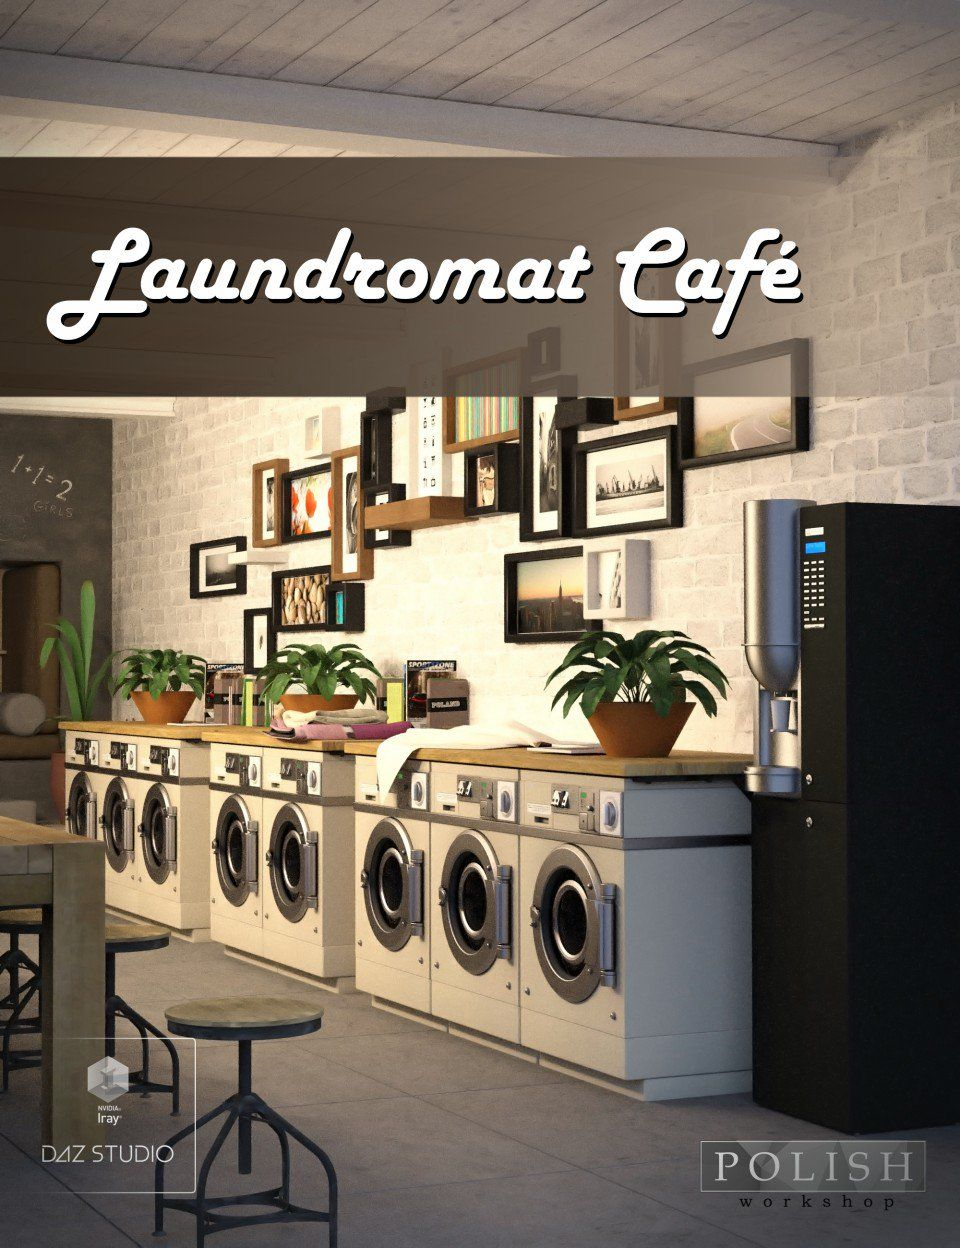 Laundromat Cafe Laundromat Business Laundry Business Laundry